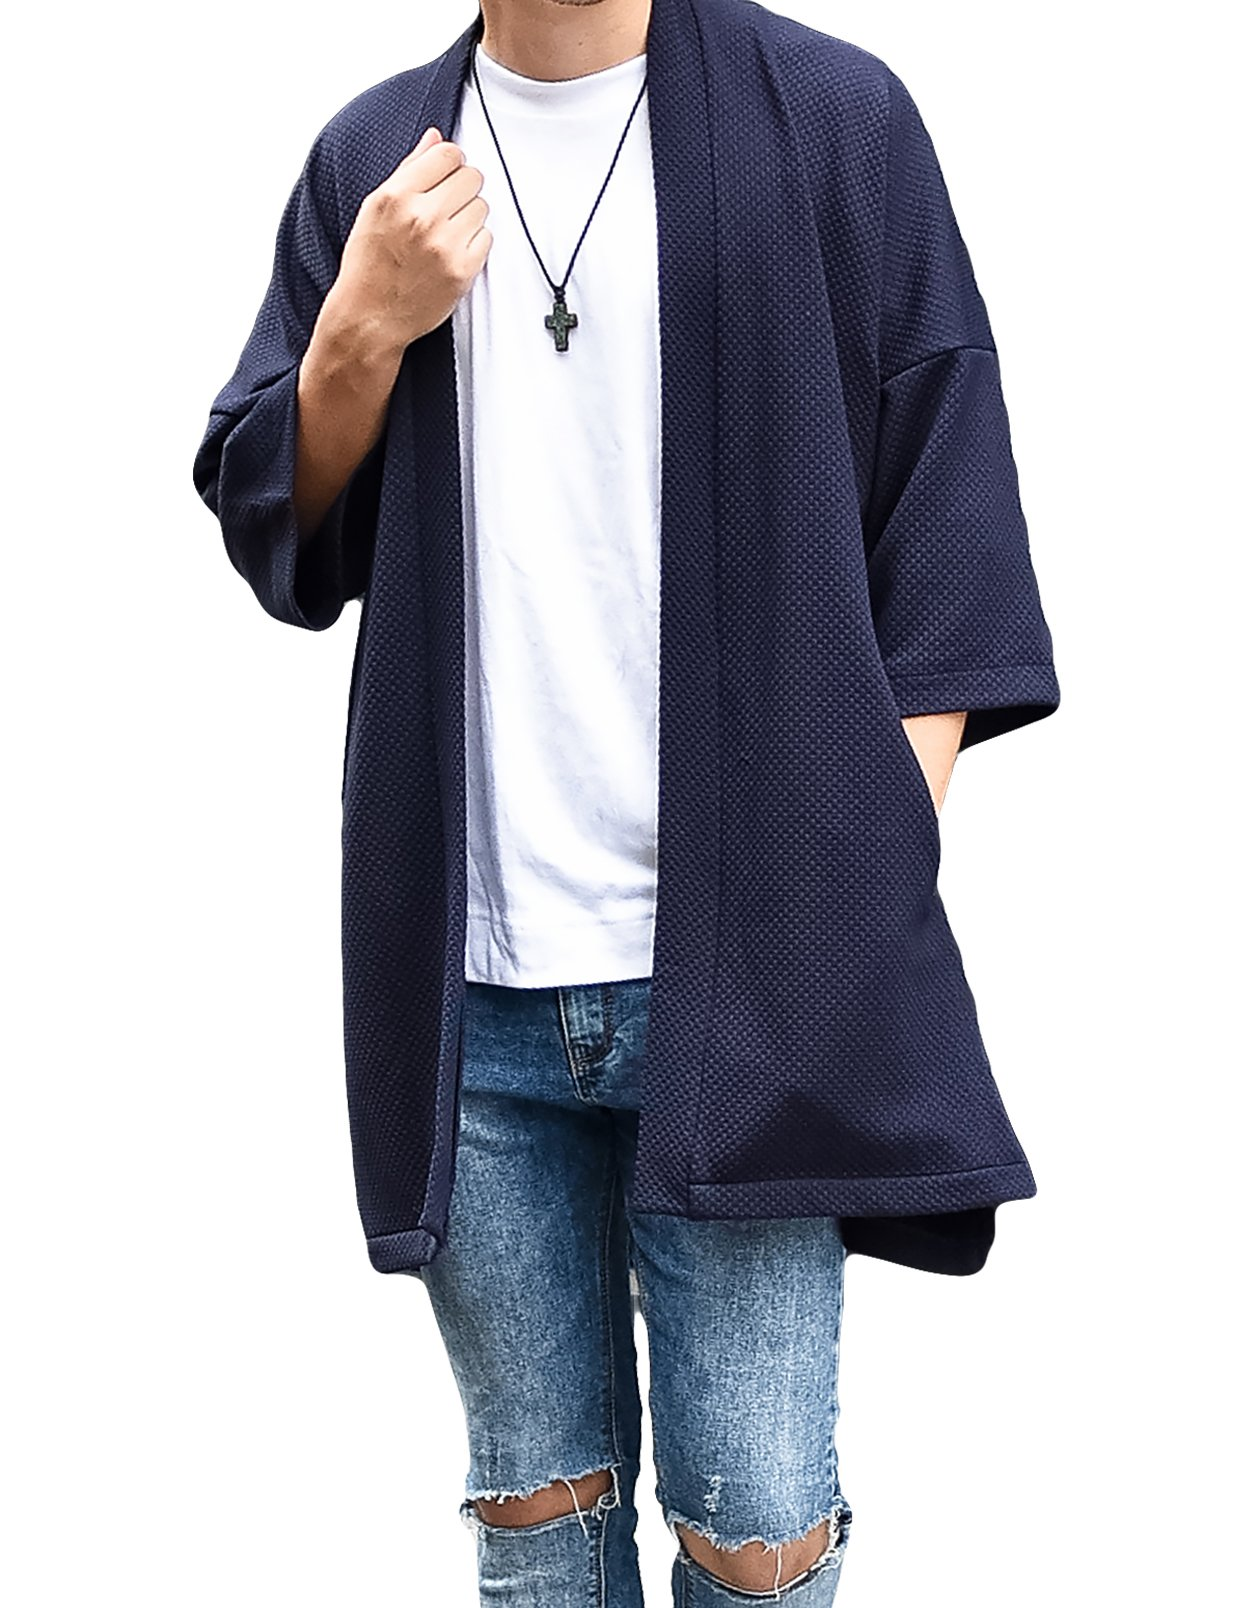 LOST IN BKK Men's Long Oversized Kimono Cardigan Noragi Street Jacket Haori Man Yukata Coat (Navy) by LOST IN BKK